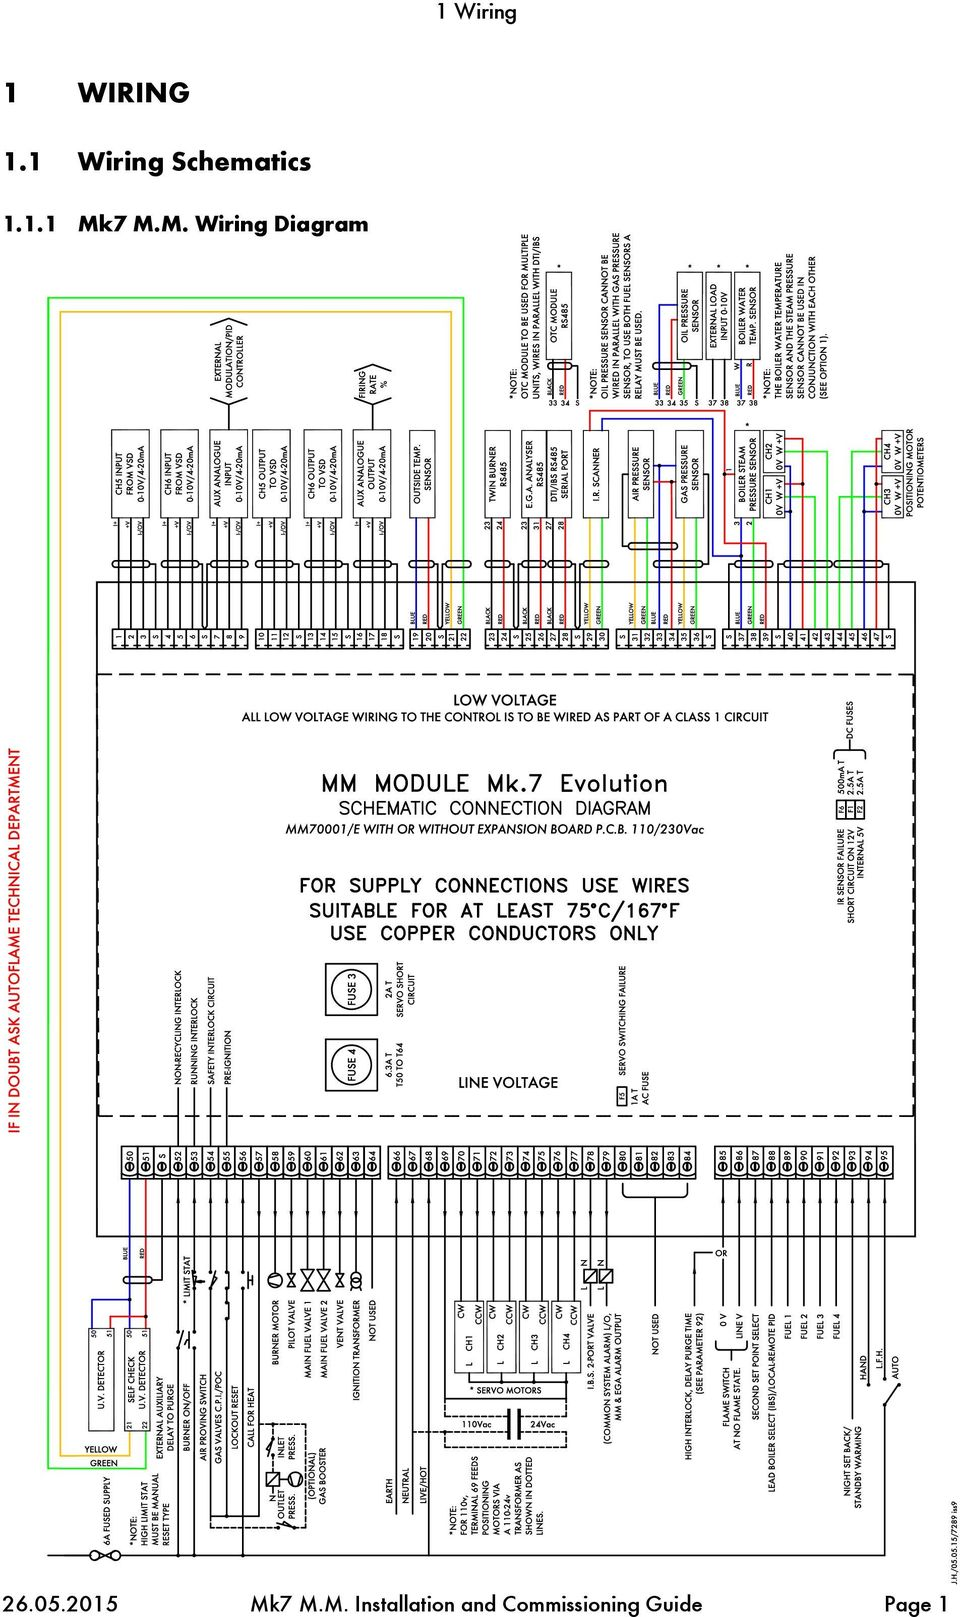 Mk7 Mm Installation And Commissioning Guide Pdf Pid Controller Wiring Diagram 230v 7 2605